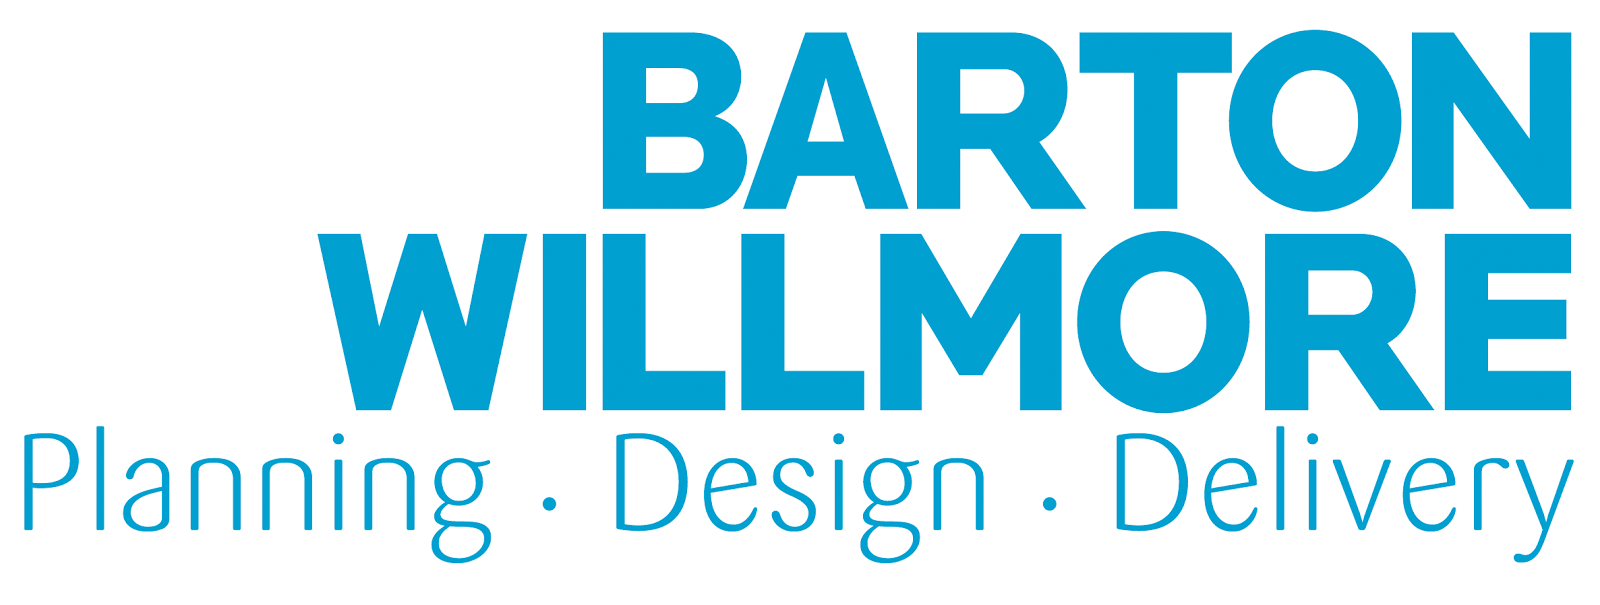 Barton Willmore